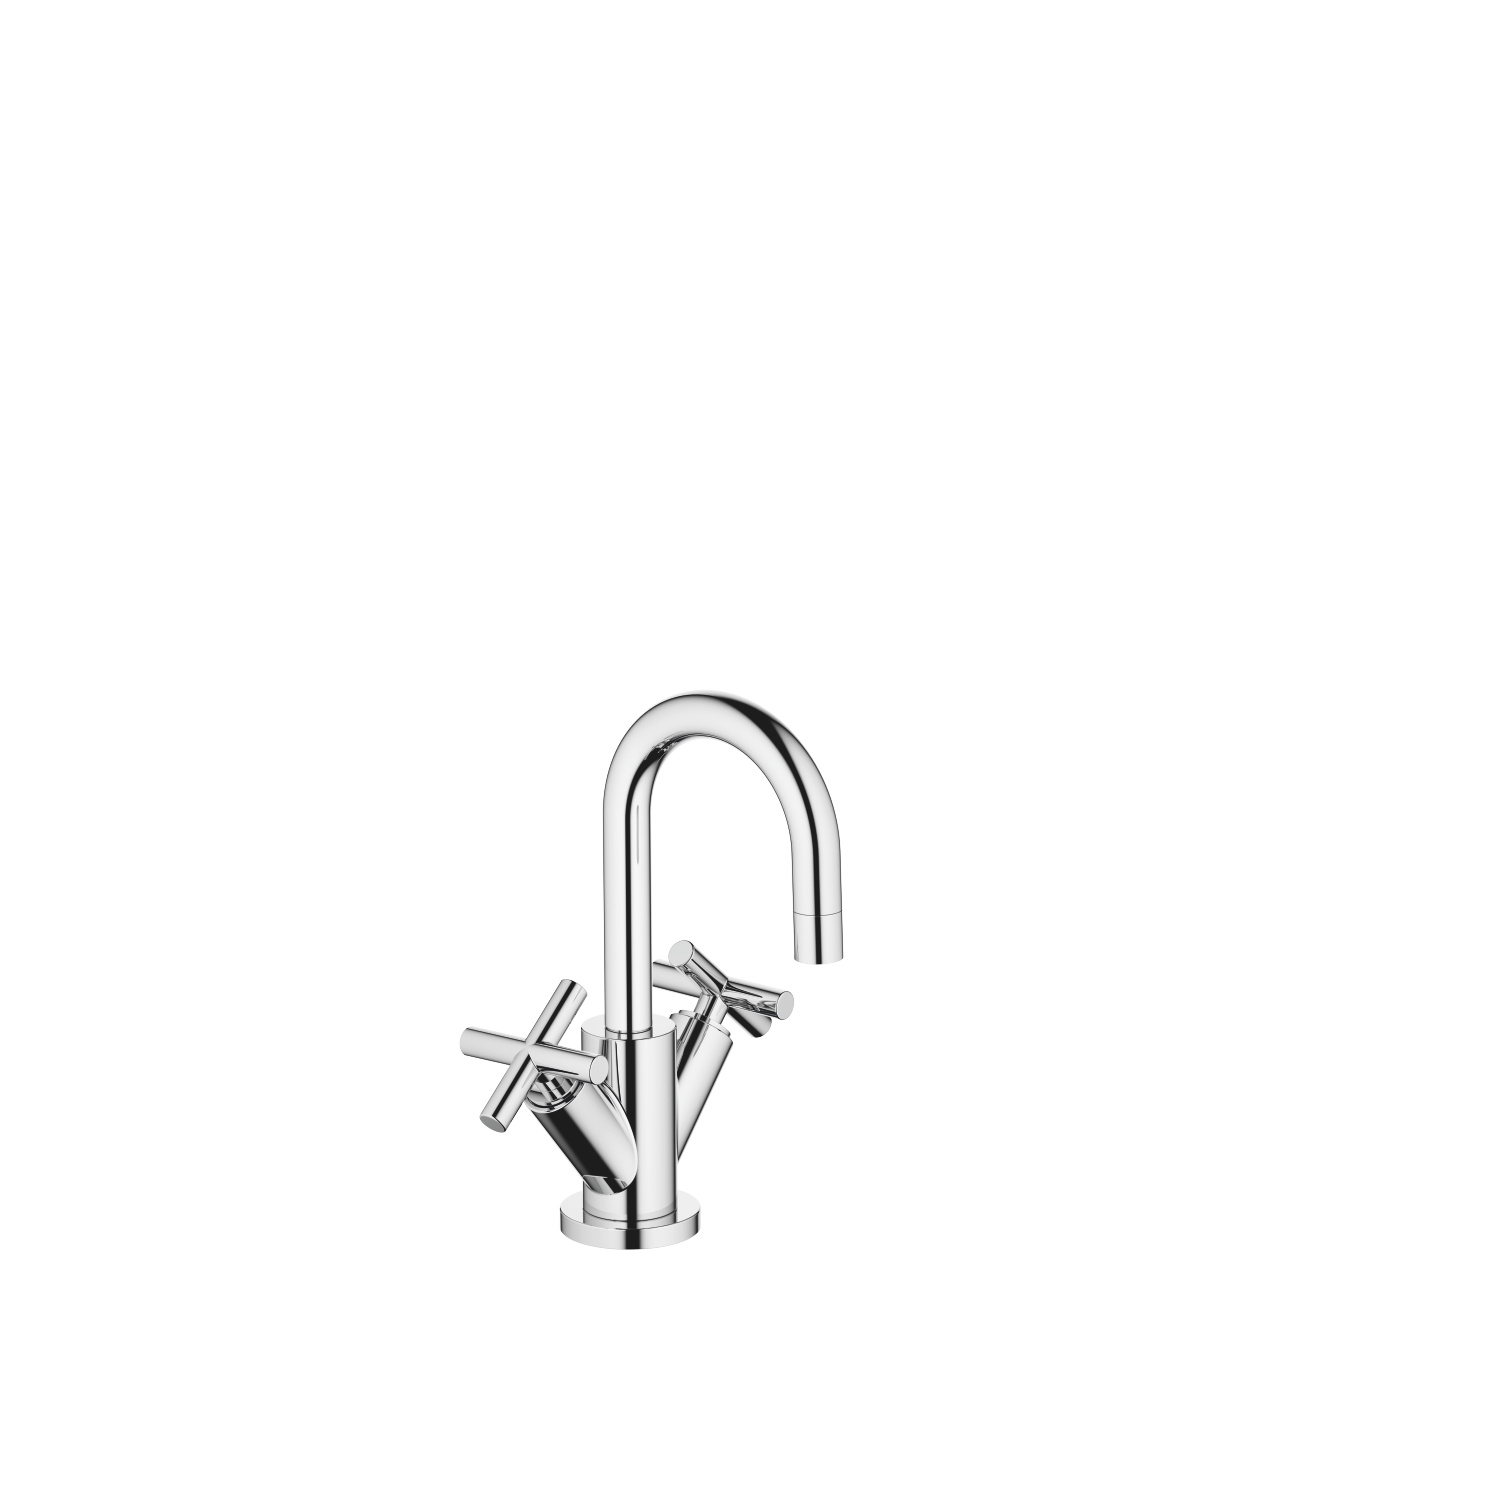 Single-hole basin mixer with pop-up waste - polished chrome - 22 302 892-00